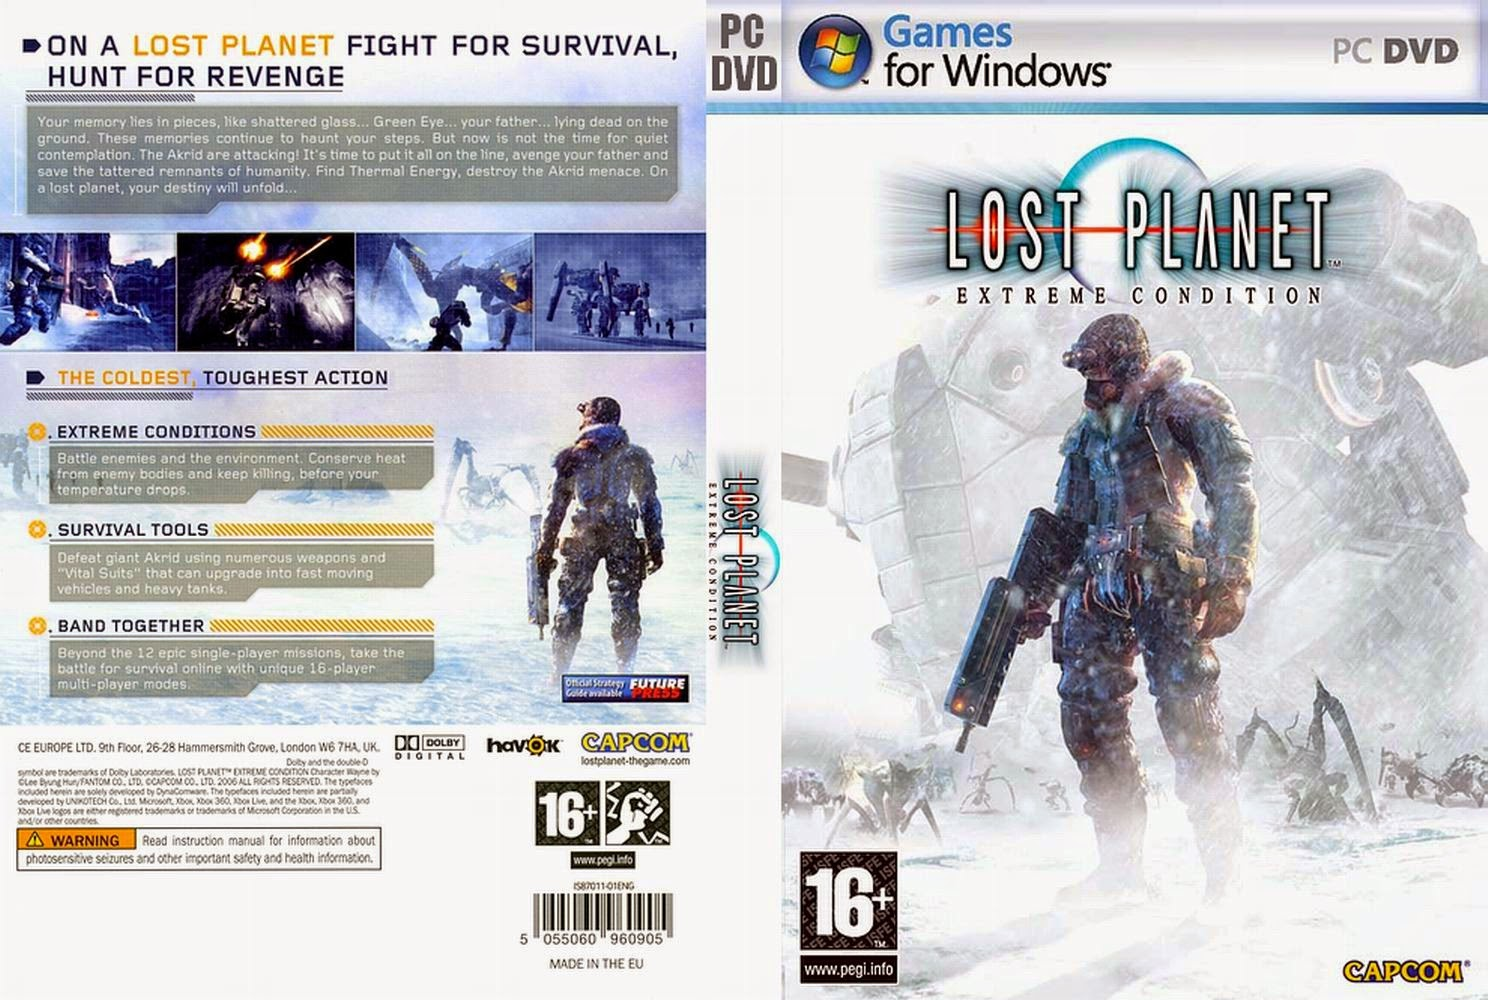 Capa do Jogo Lost Planet: Extreme Condition PC